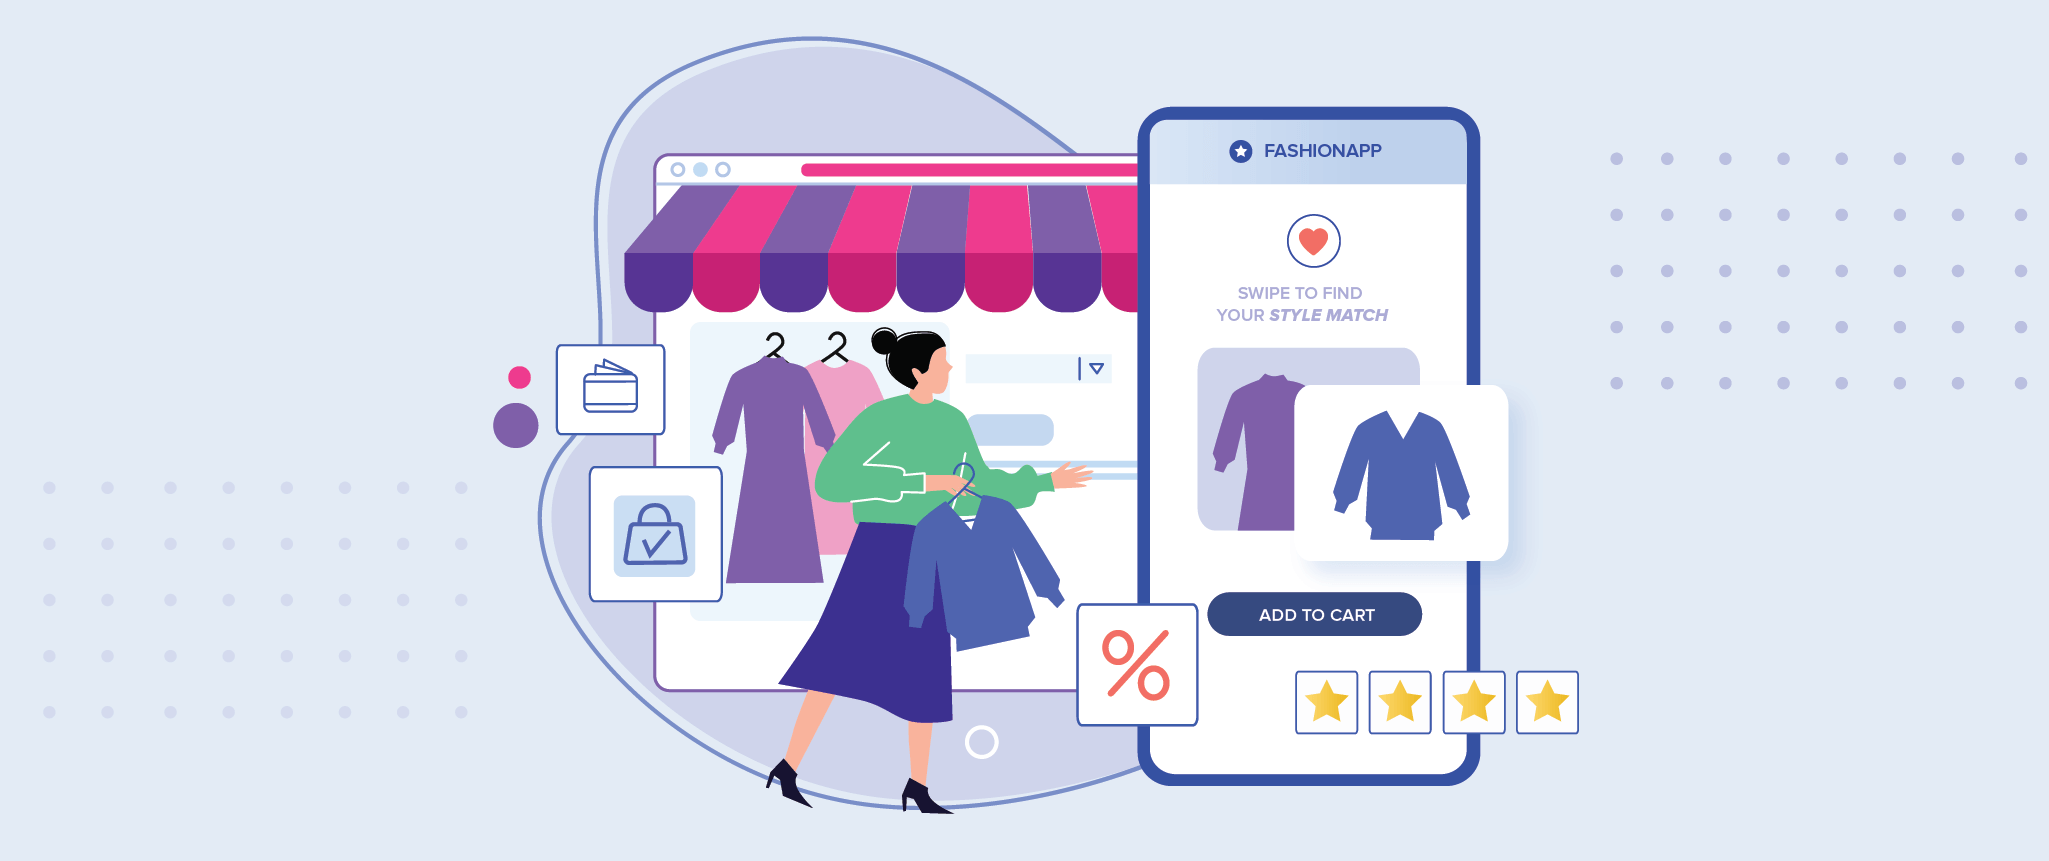 Ecommerce App Design: UI Tips & Microinteractions that Boost Conversions